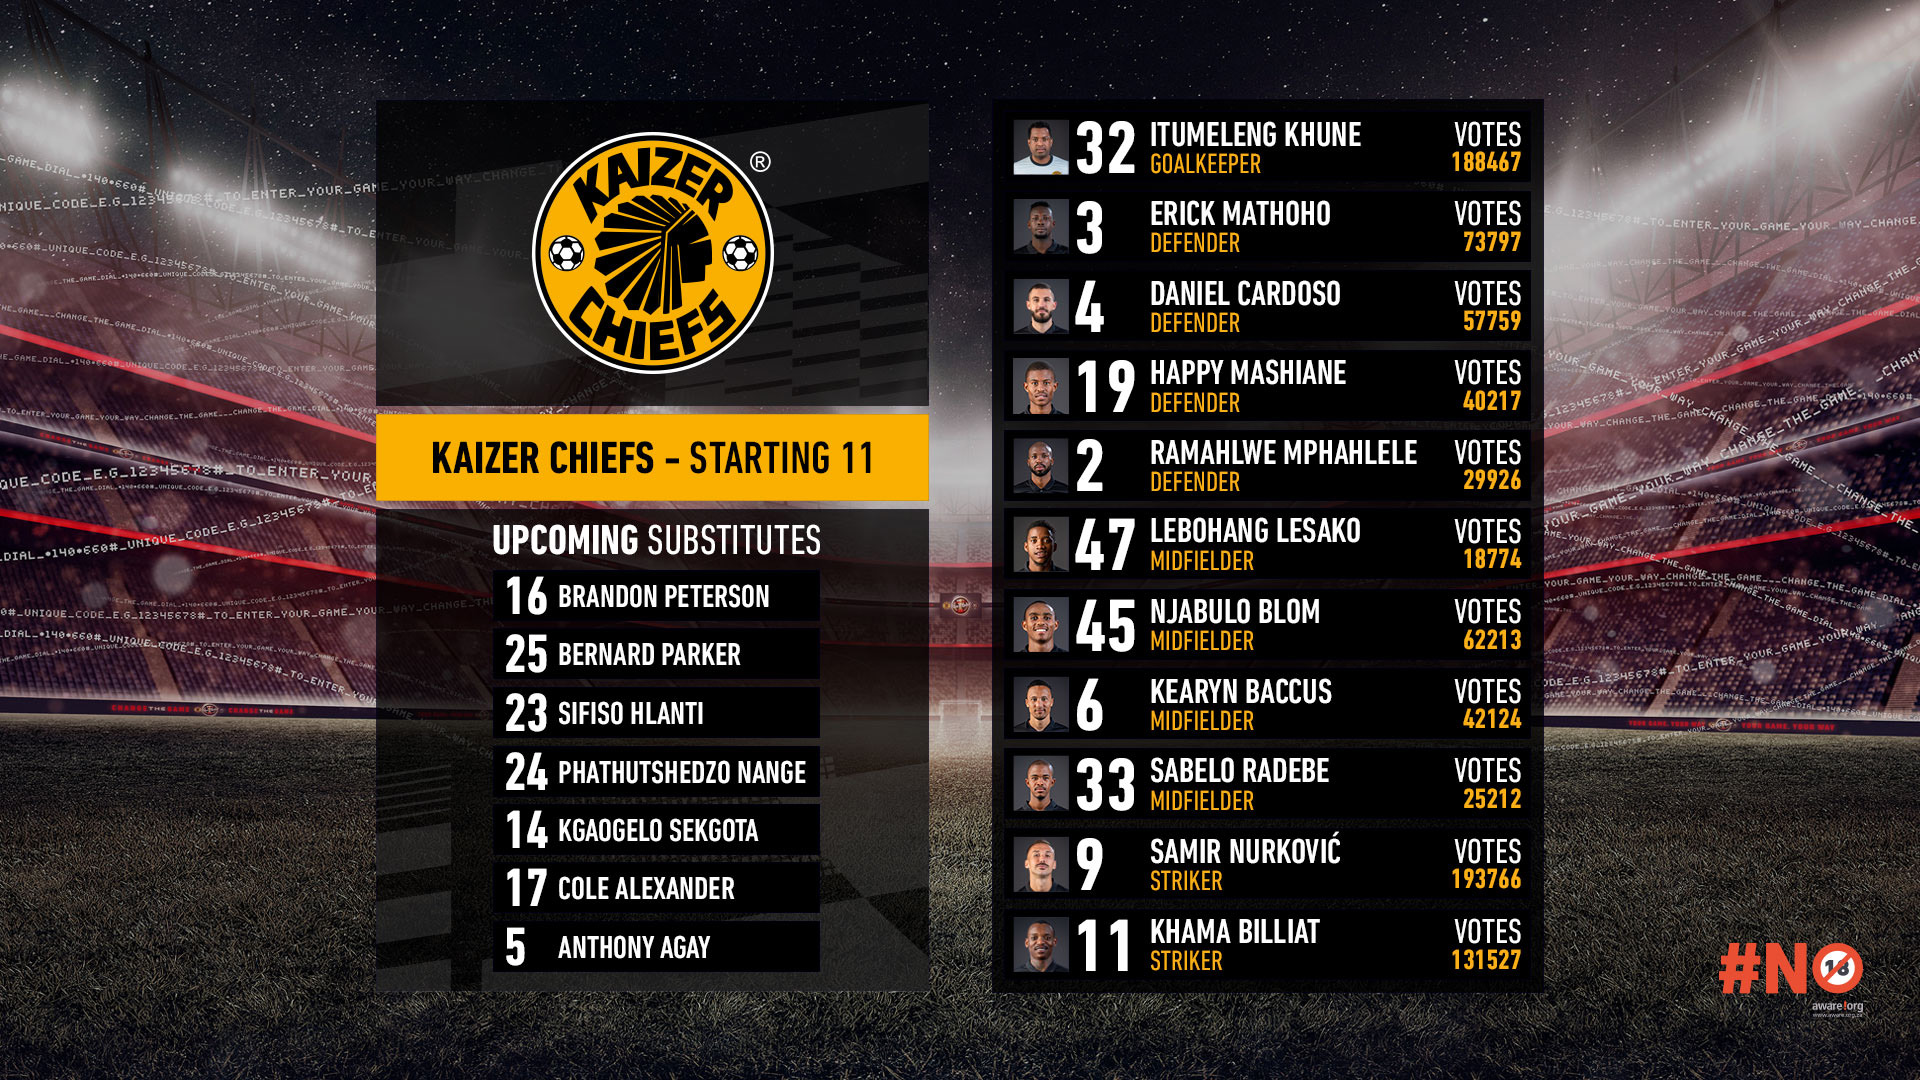 Kaizer Chiefs on Twitter